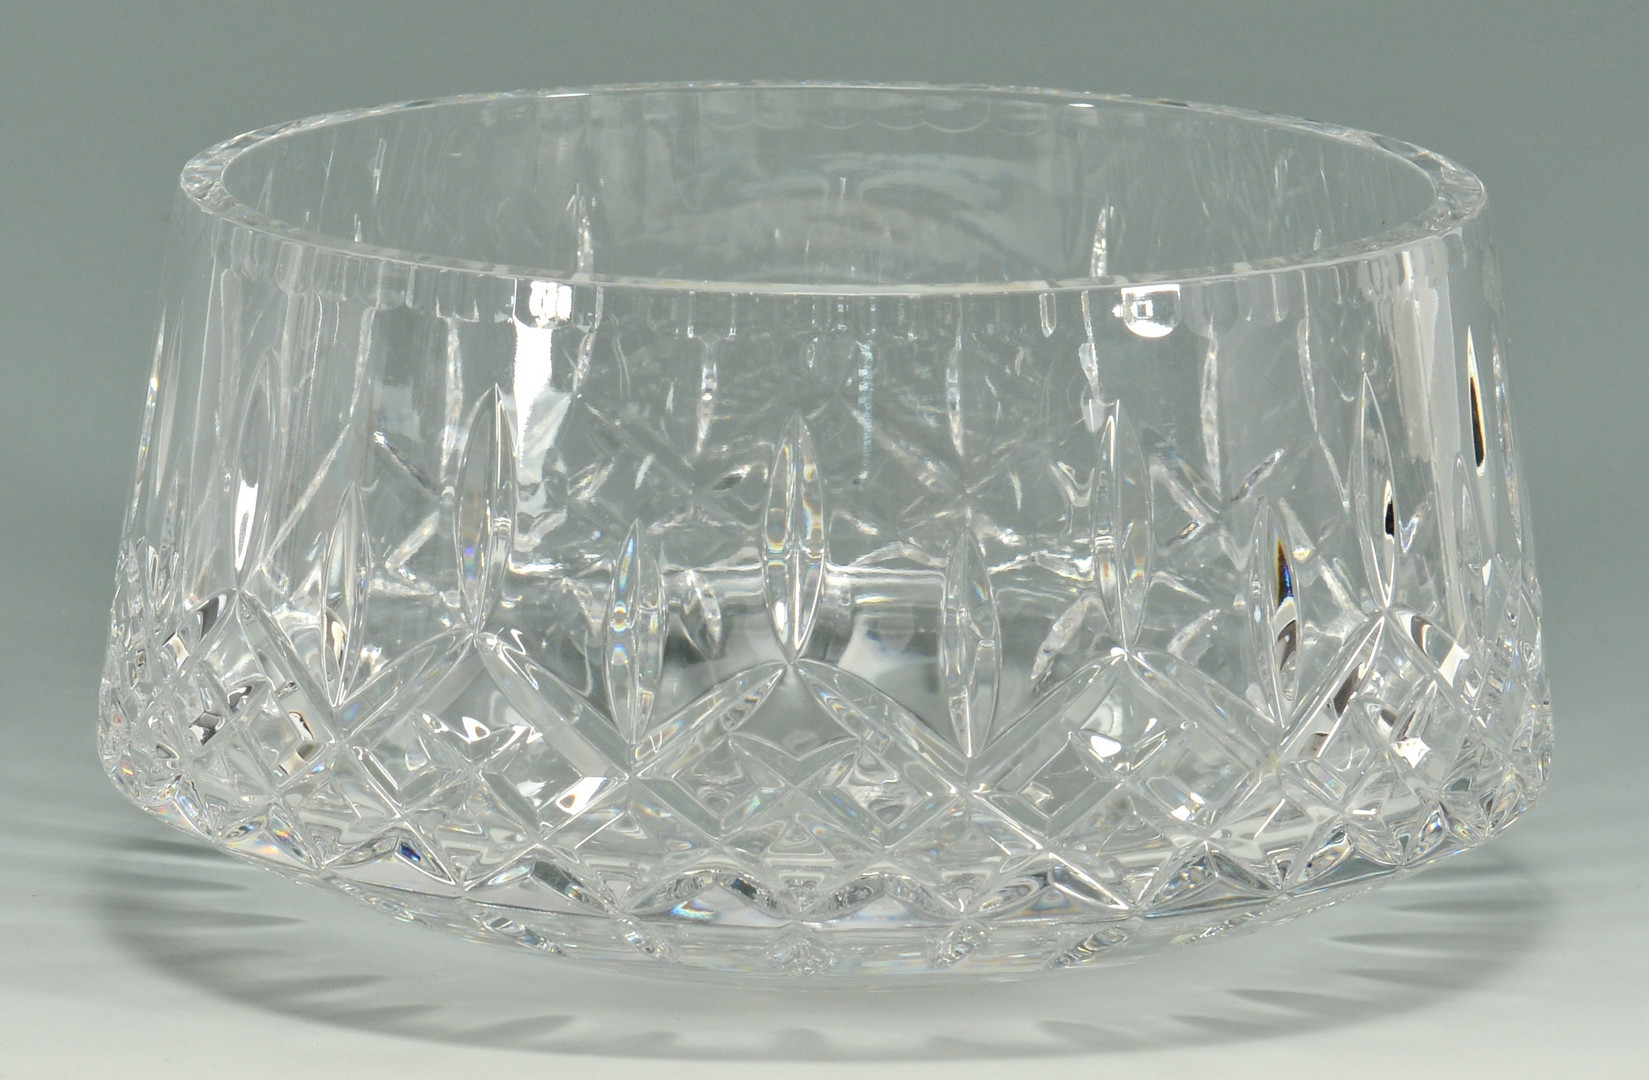 Lot 878: Grouping of 4 Crystal Bowls, 3 Orrefors